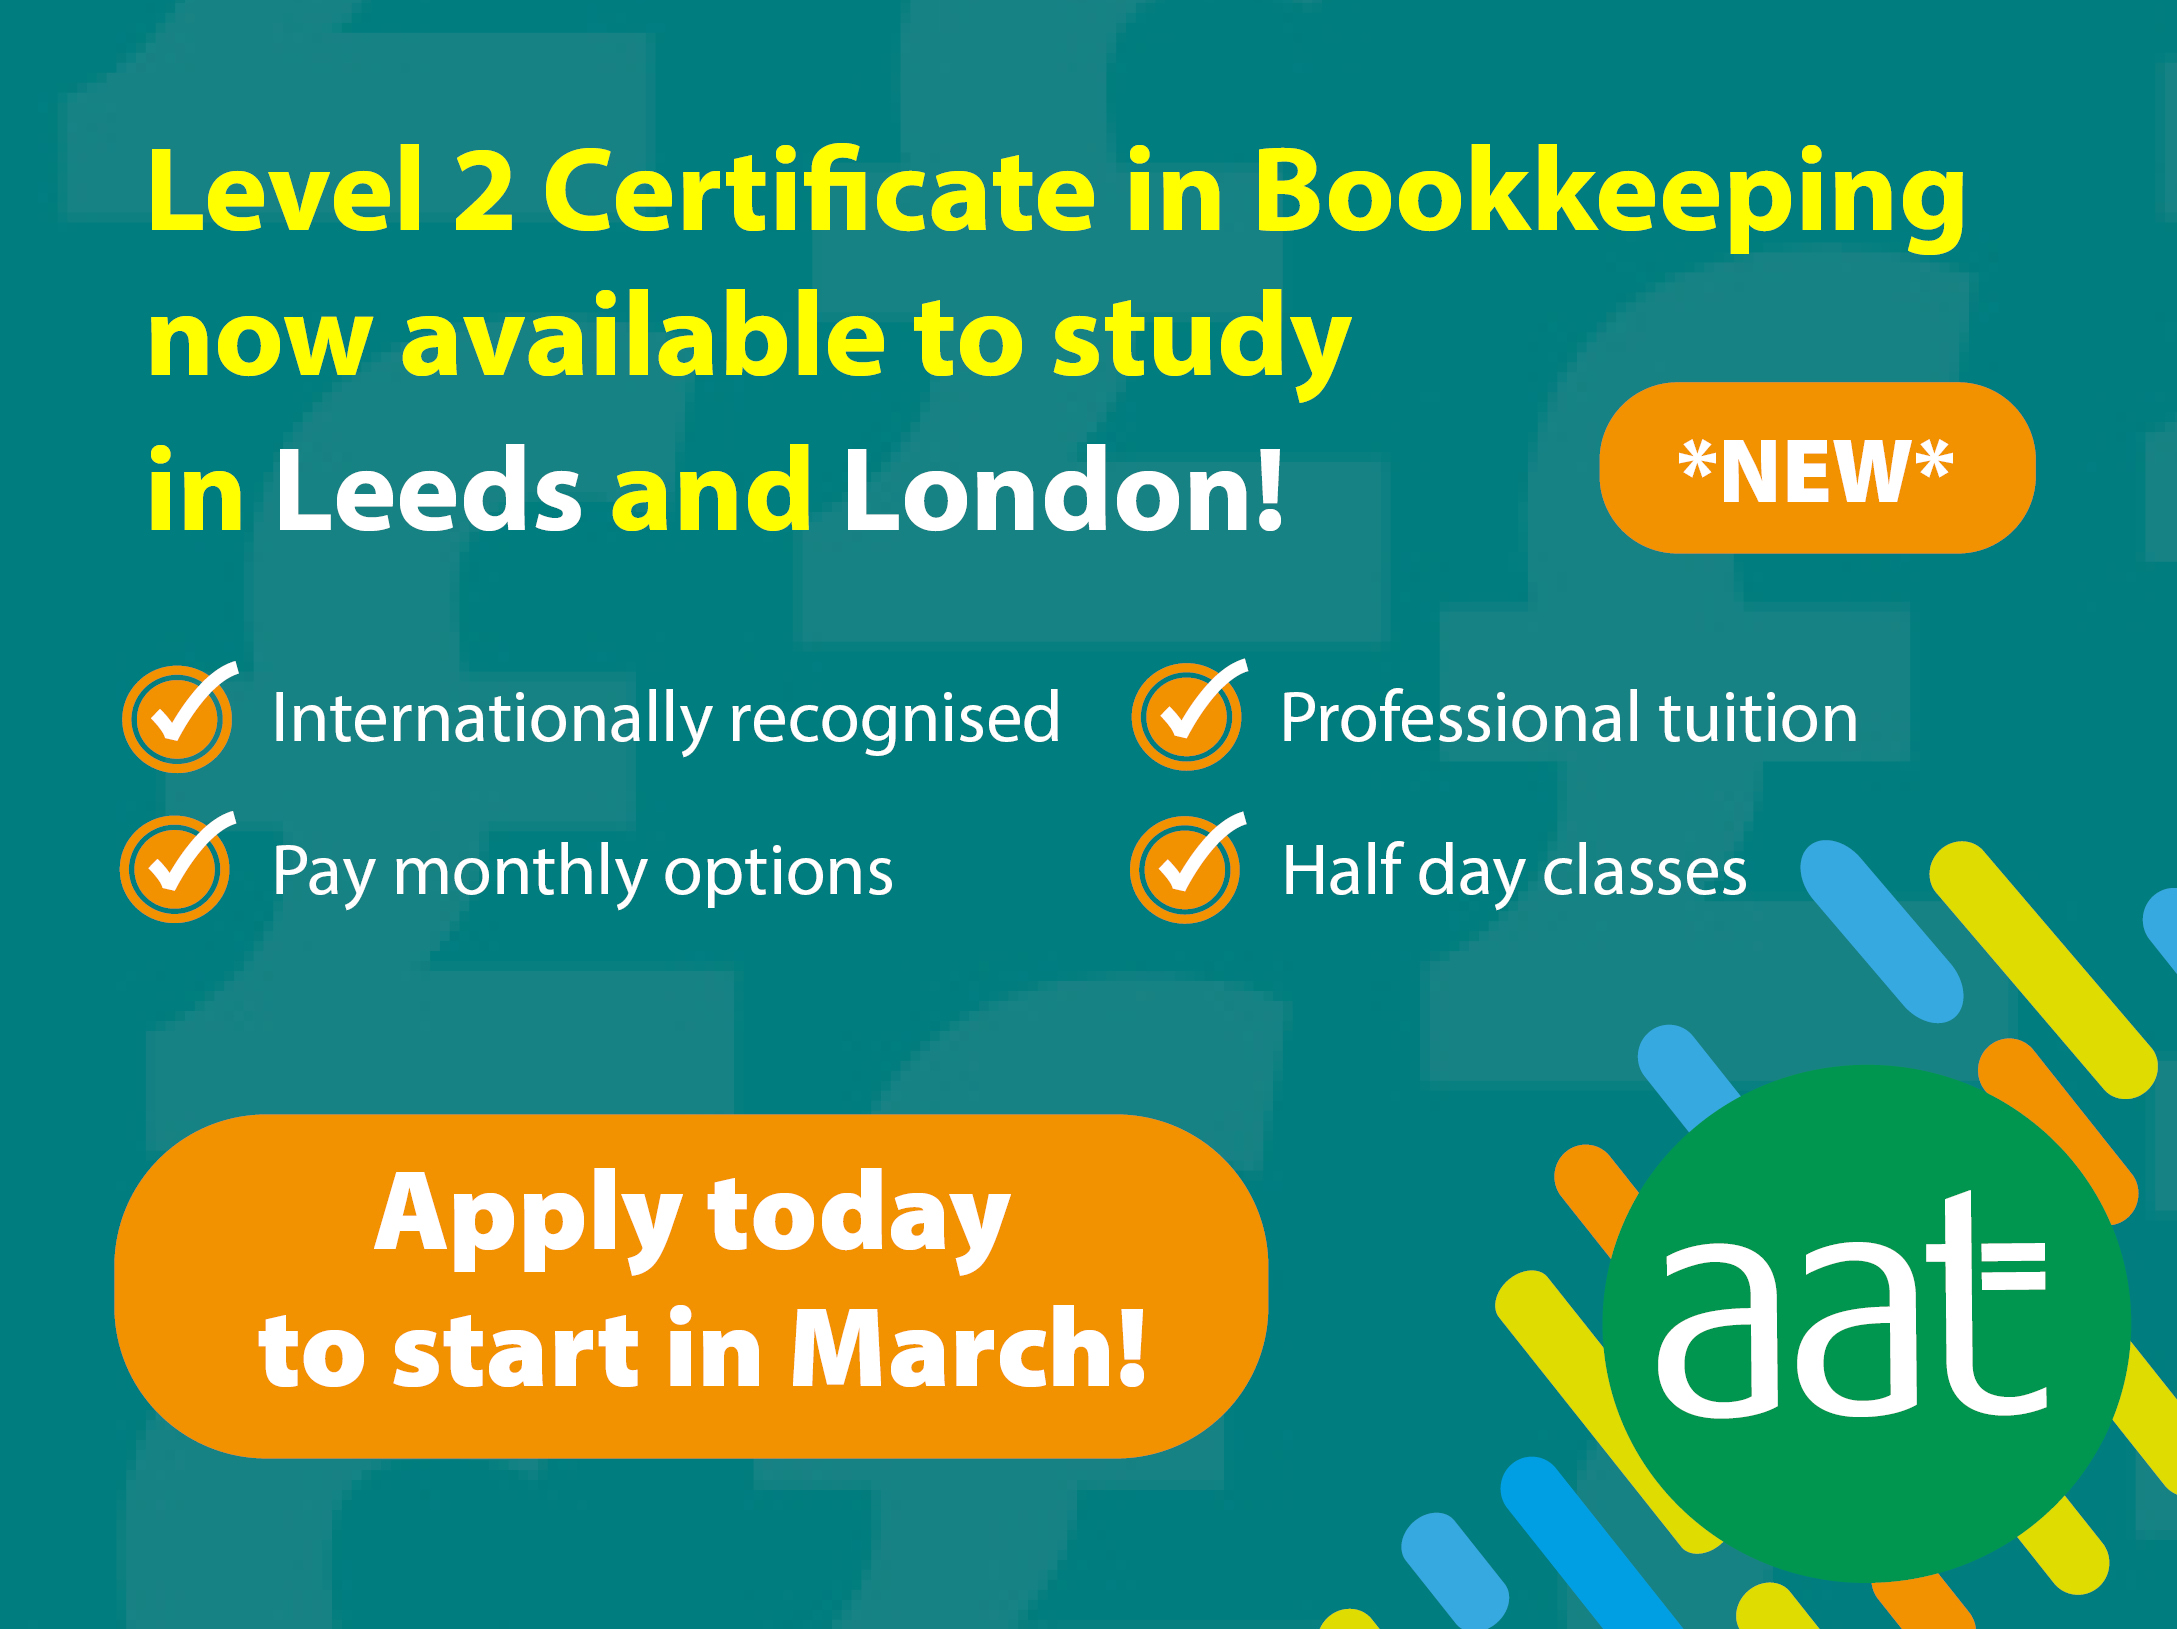 AAT Bookkeeping London and Leeds